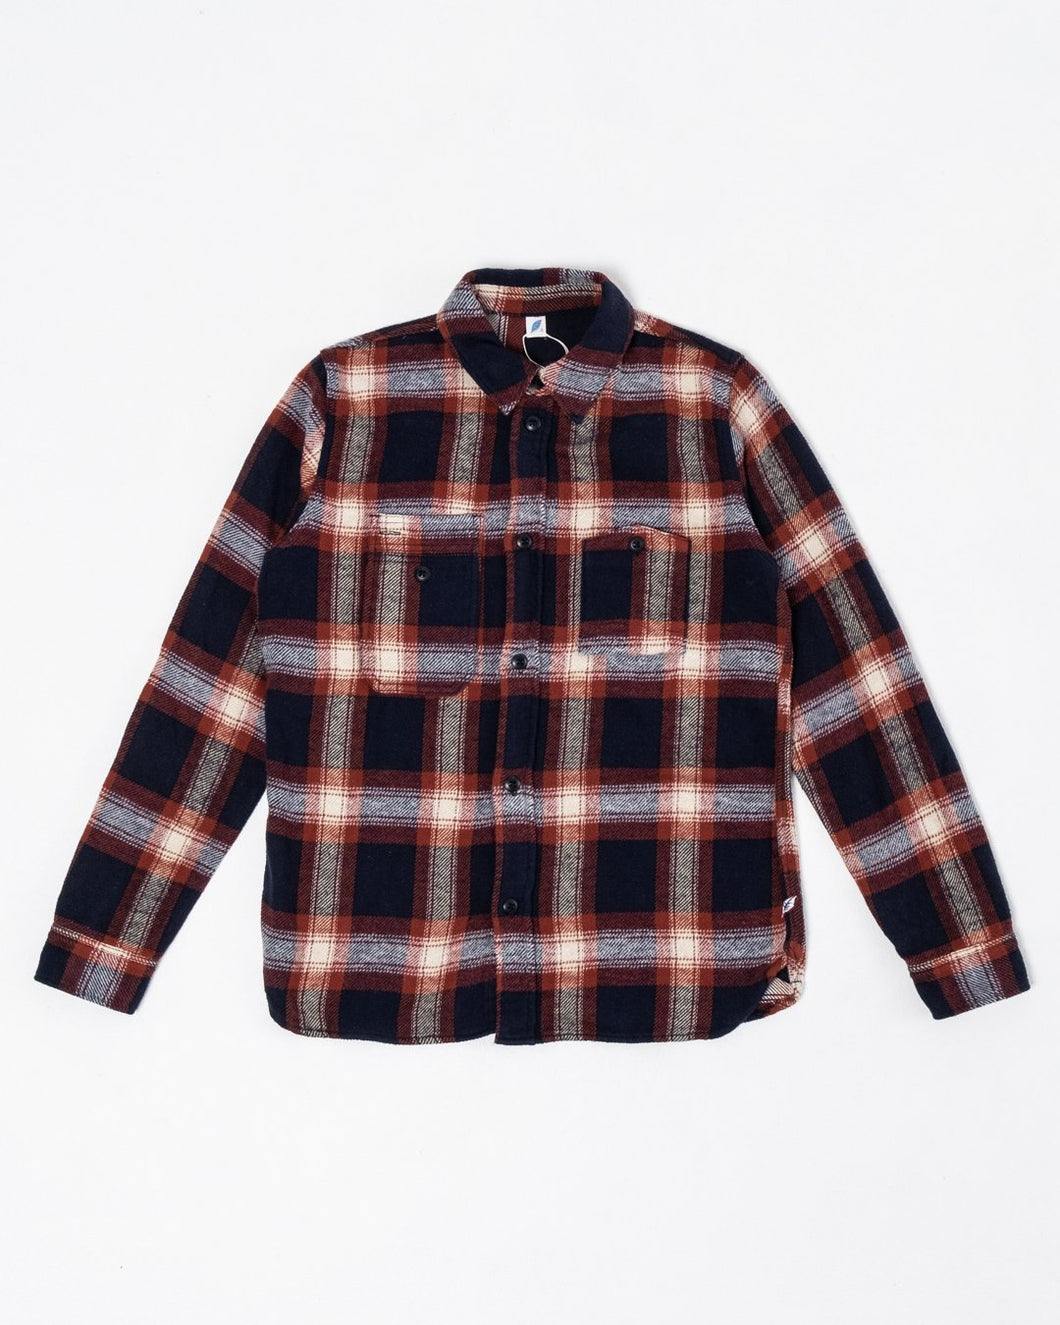 Indigo Check Flannel Work Shirt Red - Meadow